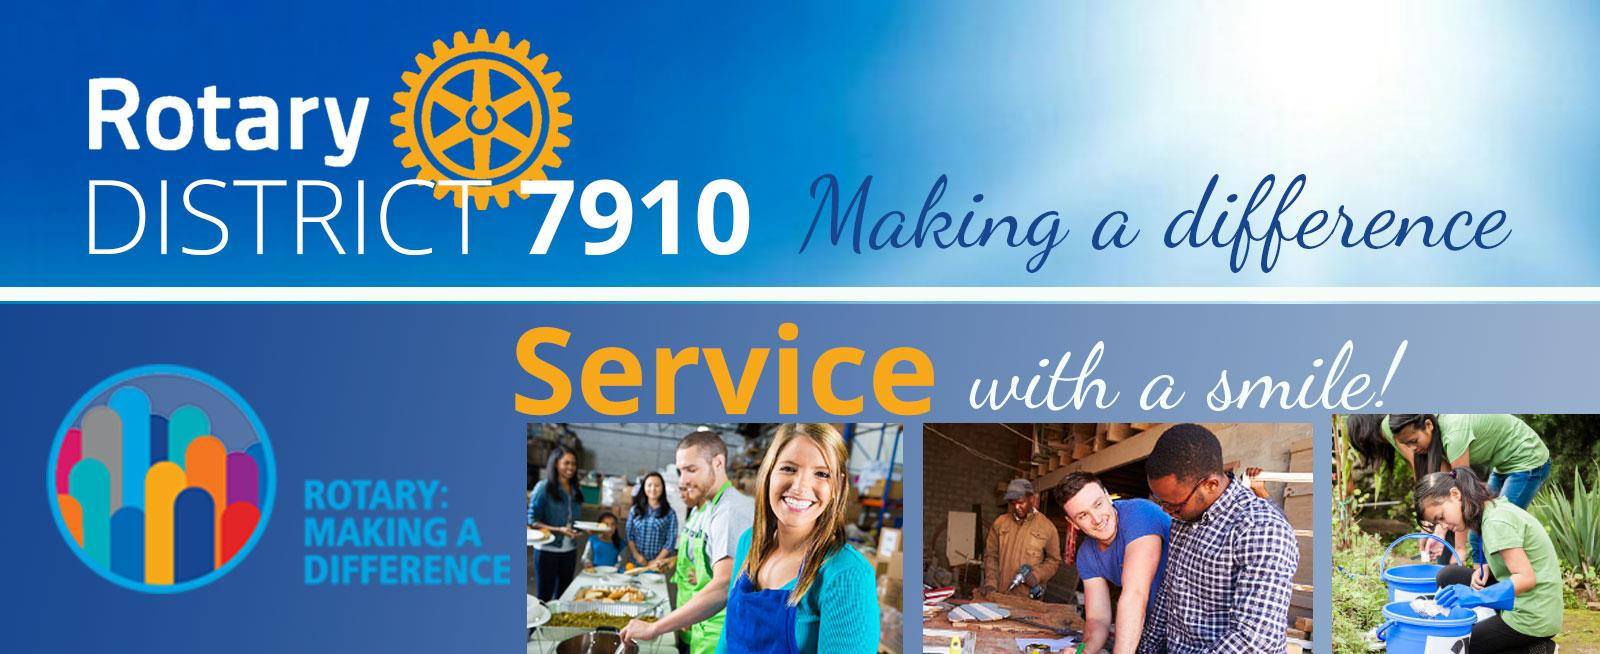 2016 rotary manual of procedure district 7820